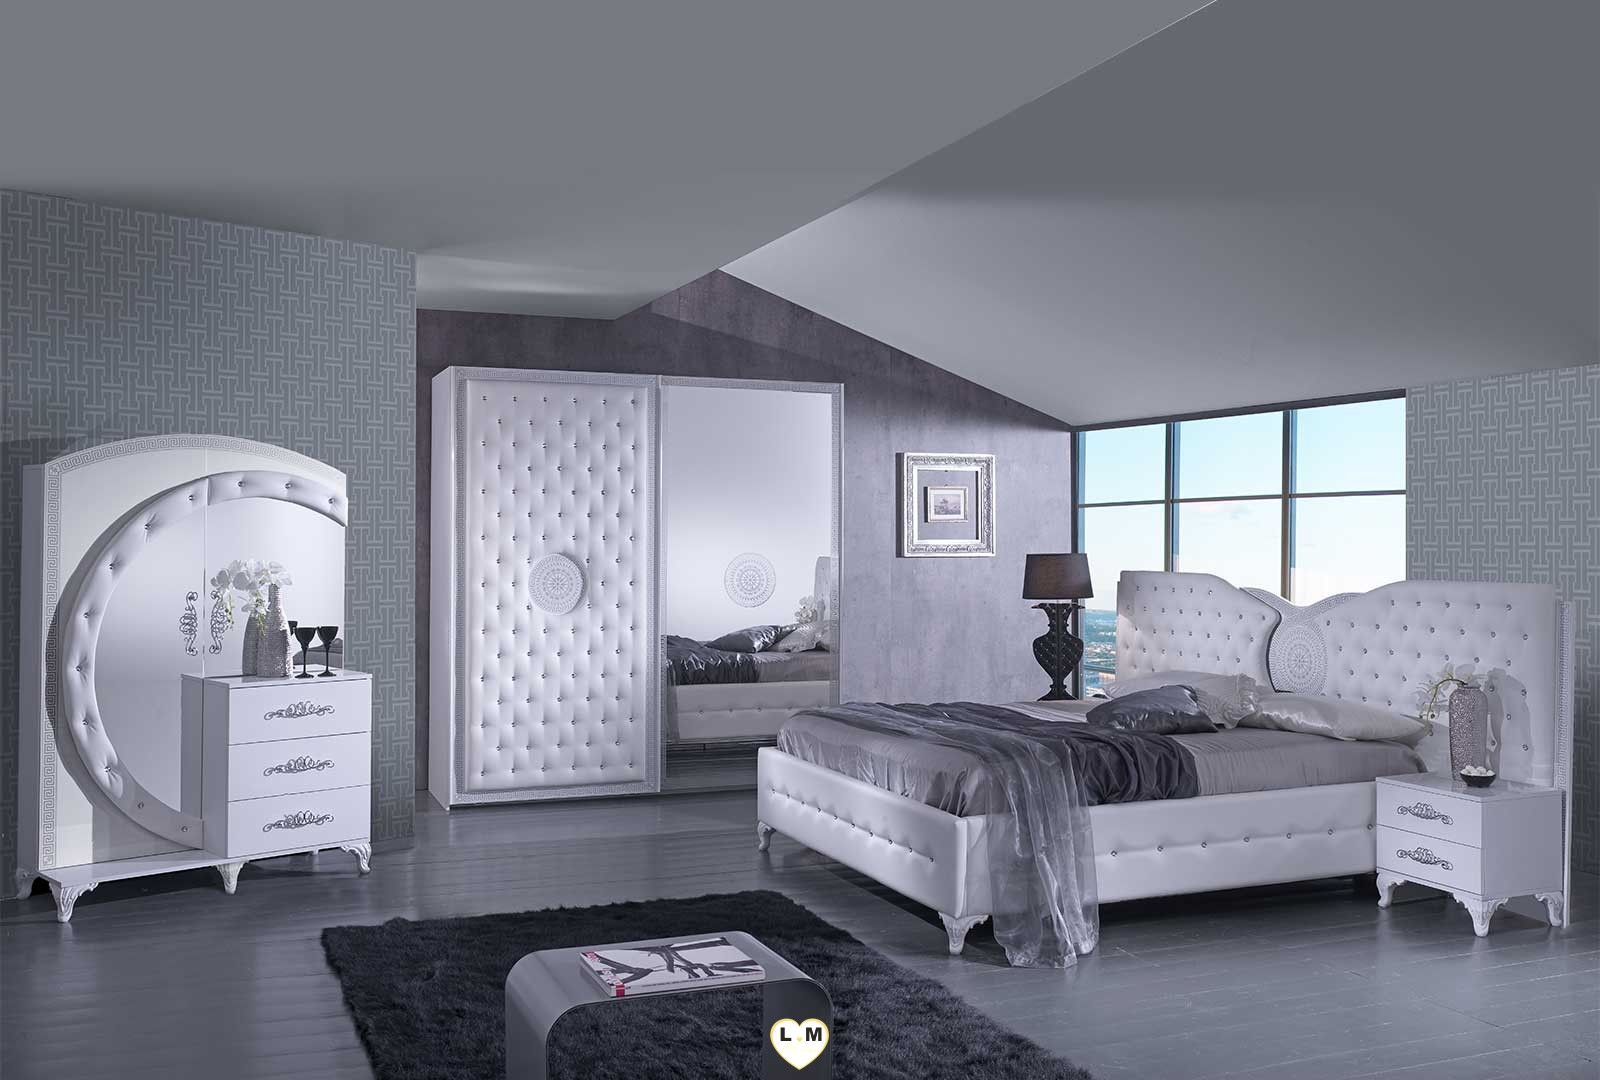 tana blanc composition ensemble meuble chambre a coucher lignemeuble com. Black Bedroom Furniture Sets. Home Design Ideas